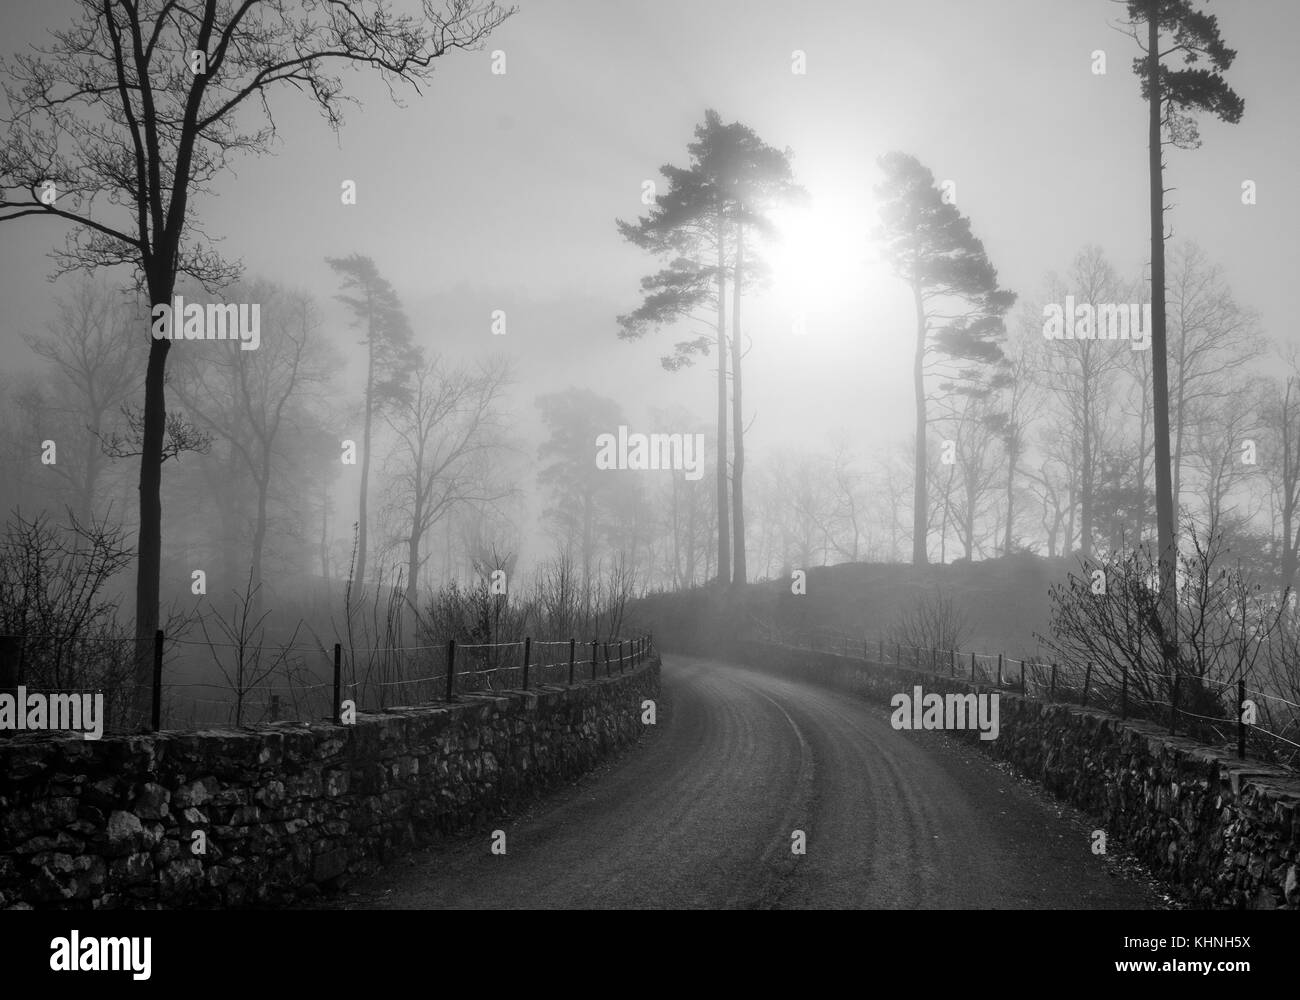 A black&white scene of a road leading to the sun rising in the mist between two pine trees with a stone fences - Stock Image